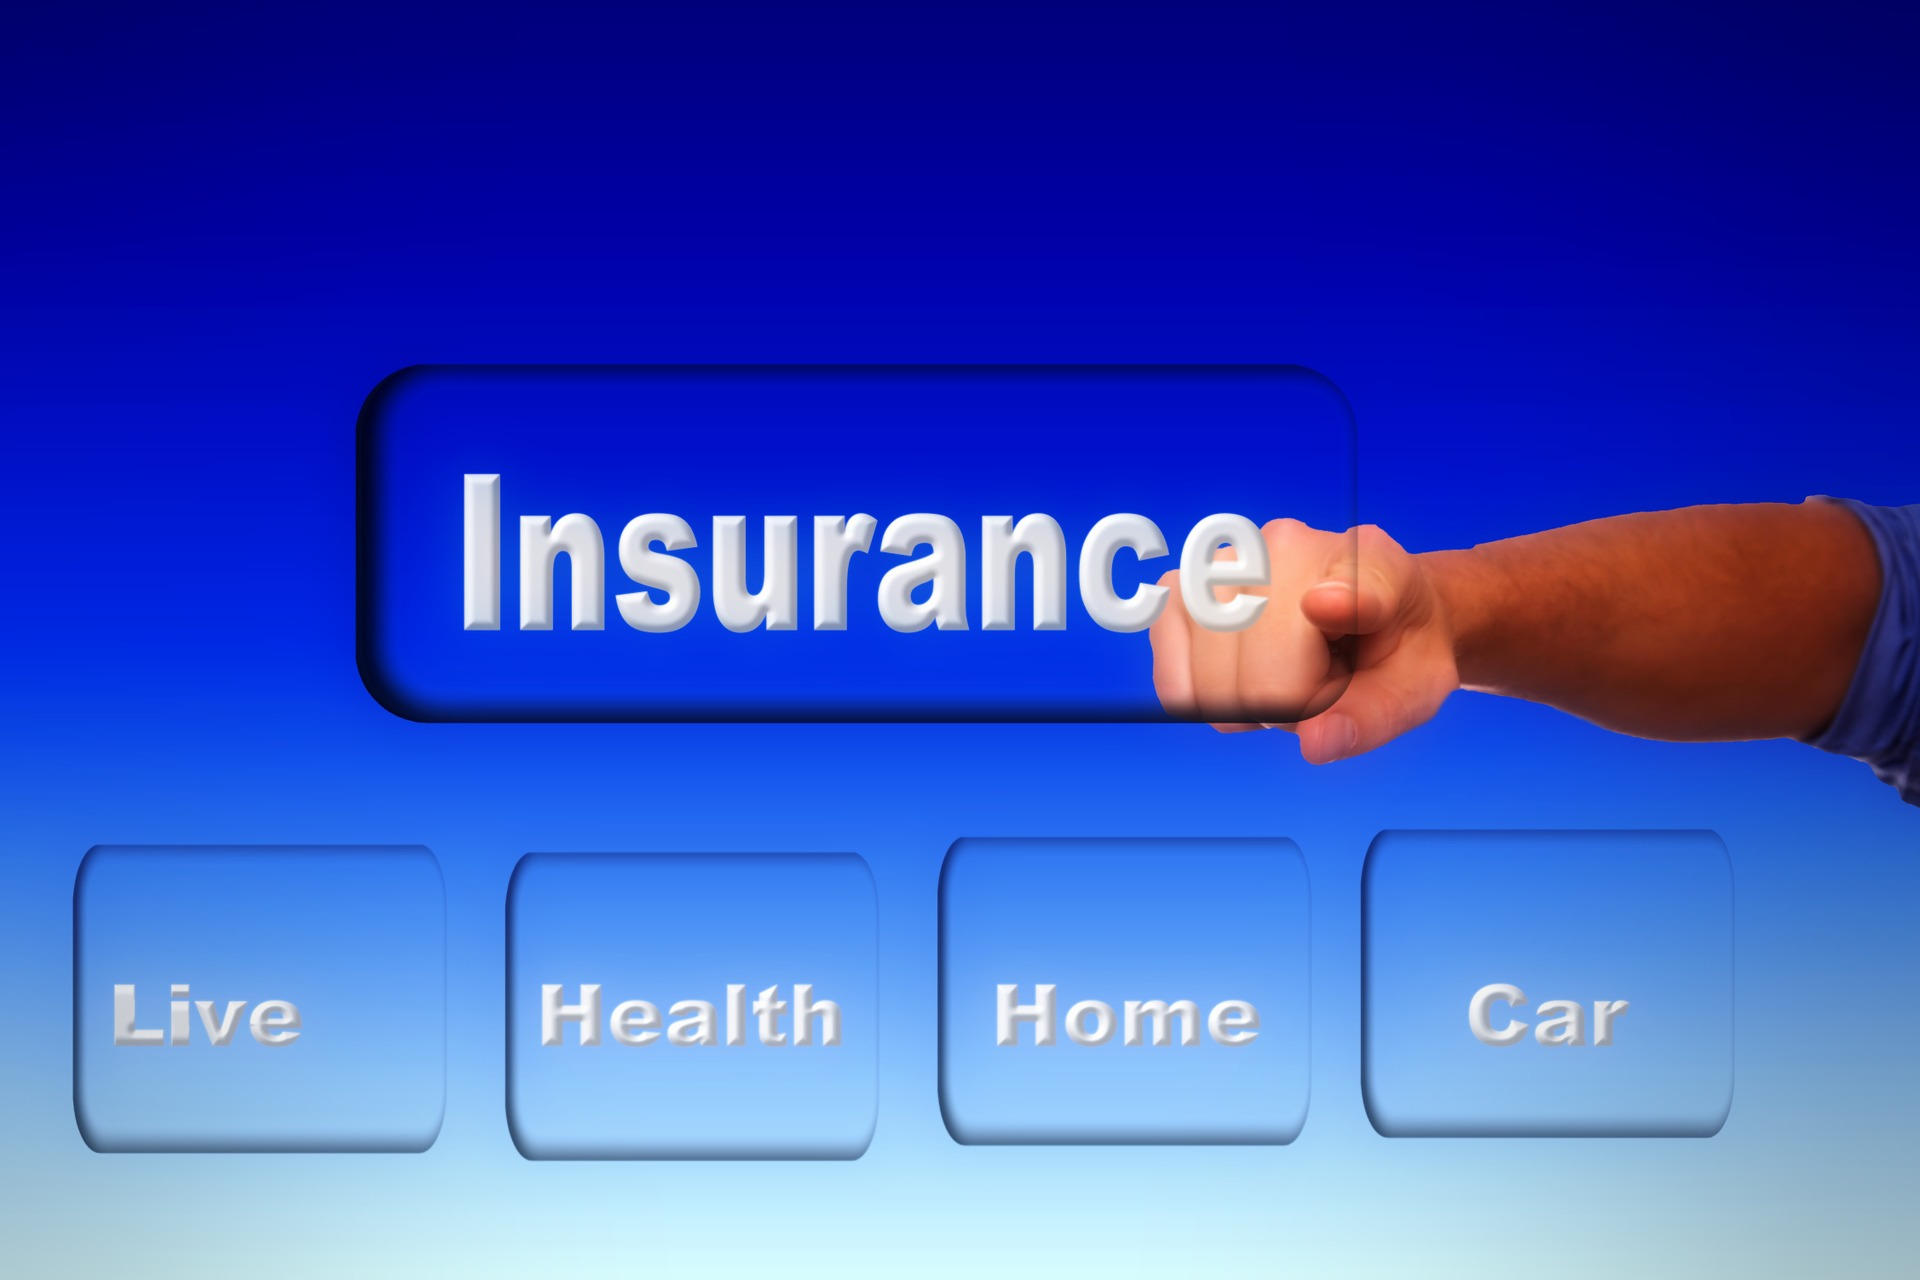 What Is The Best Insurance For You?